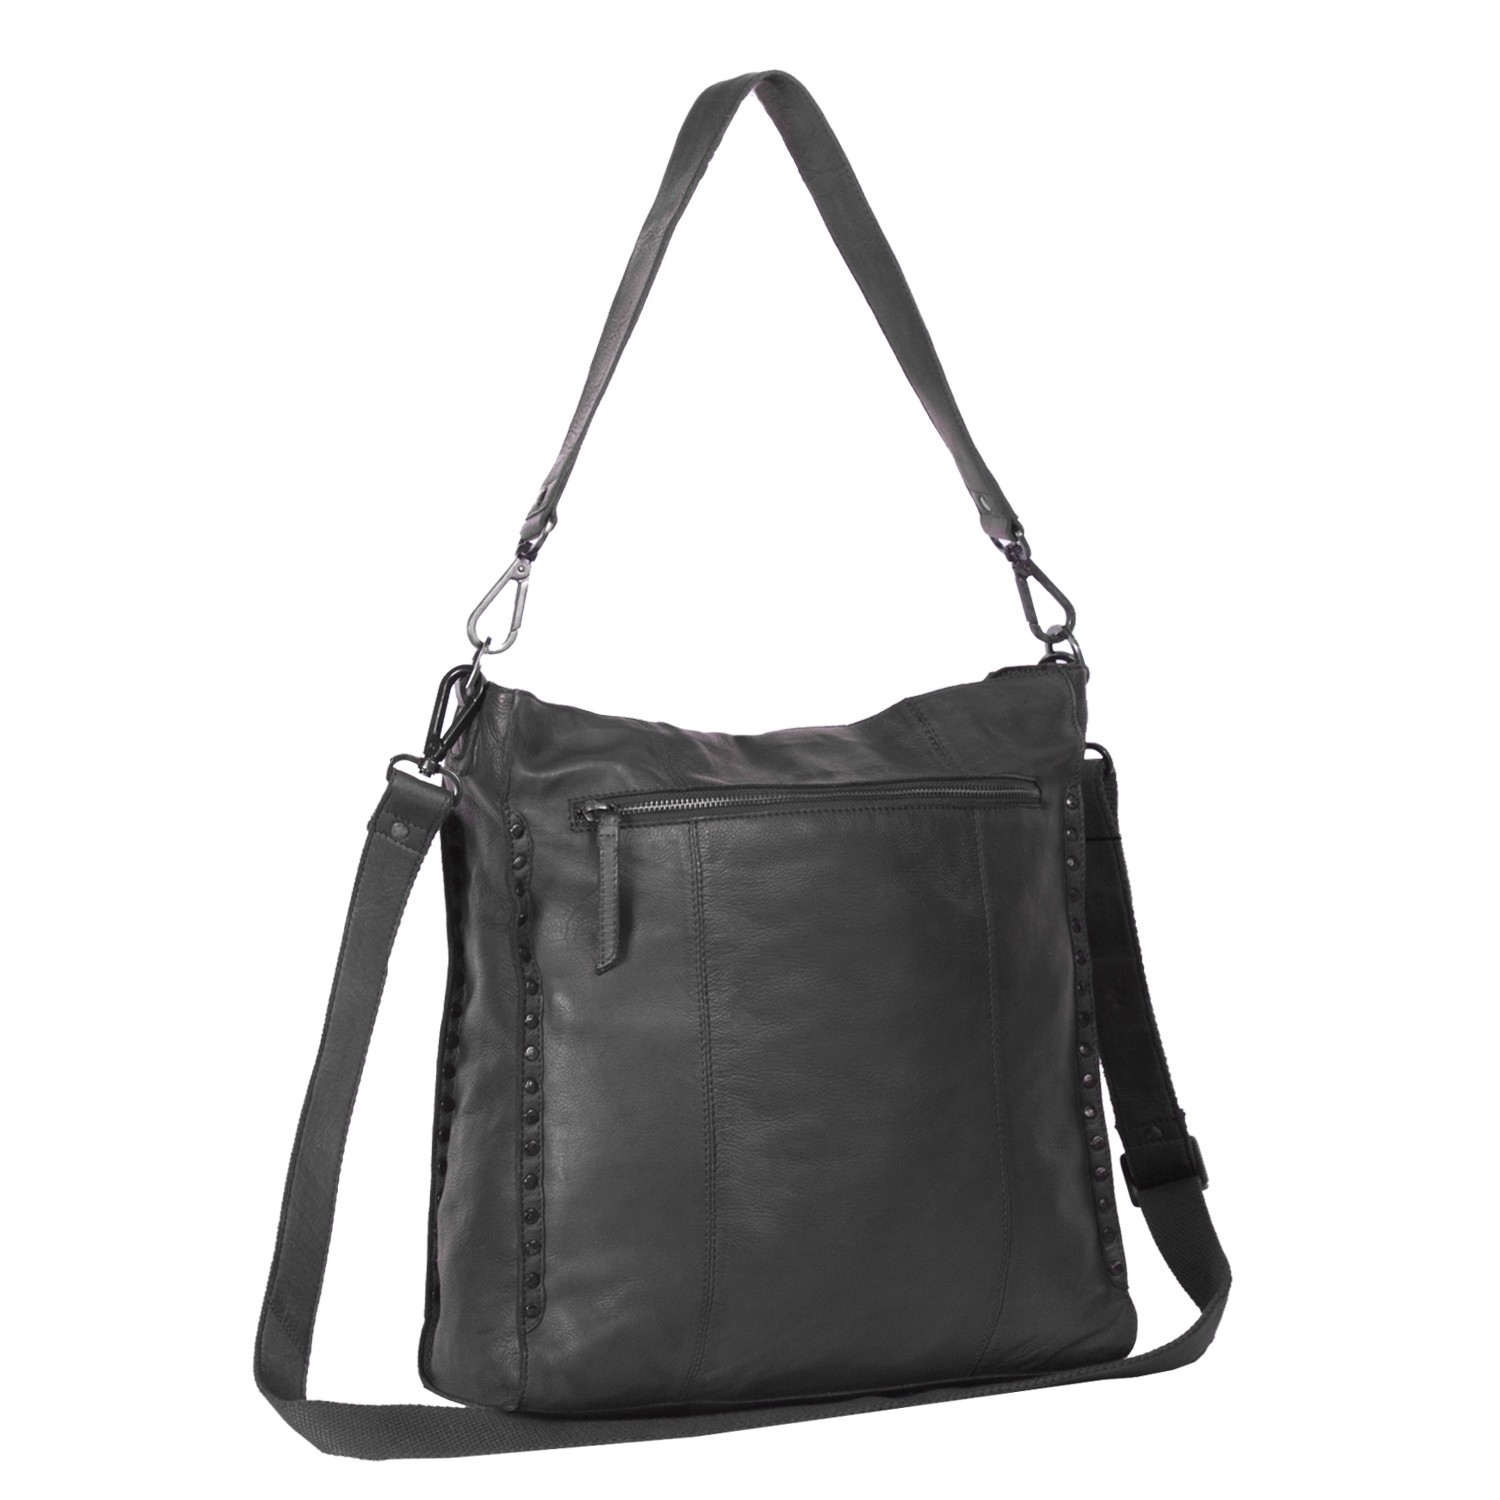 FREE SHIP Factory Price Hot Fashion Fringe Women s Tote Black Genuine  leather(Real Leather)Handbag Shoulder Bag Messenger Purse-in Crossbody Bags  from … b51897b08054d